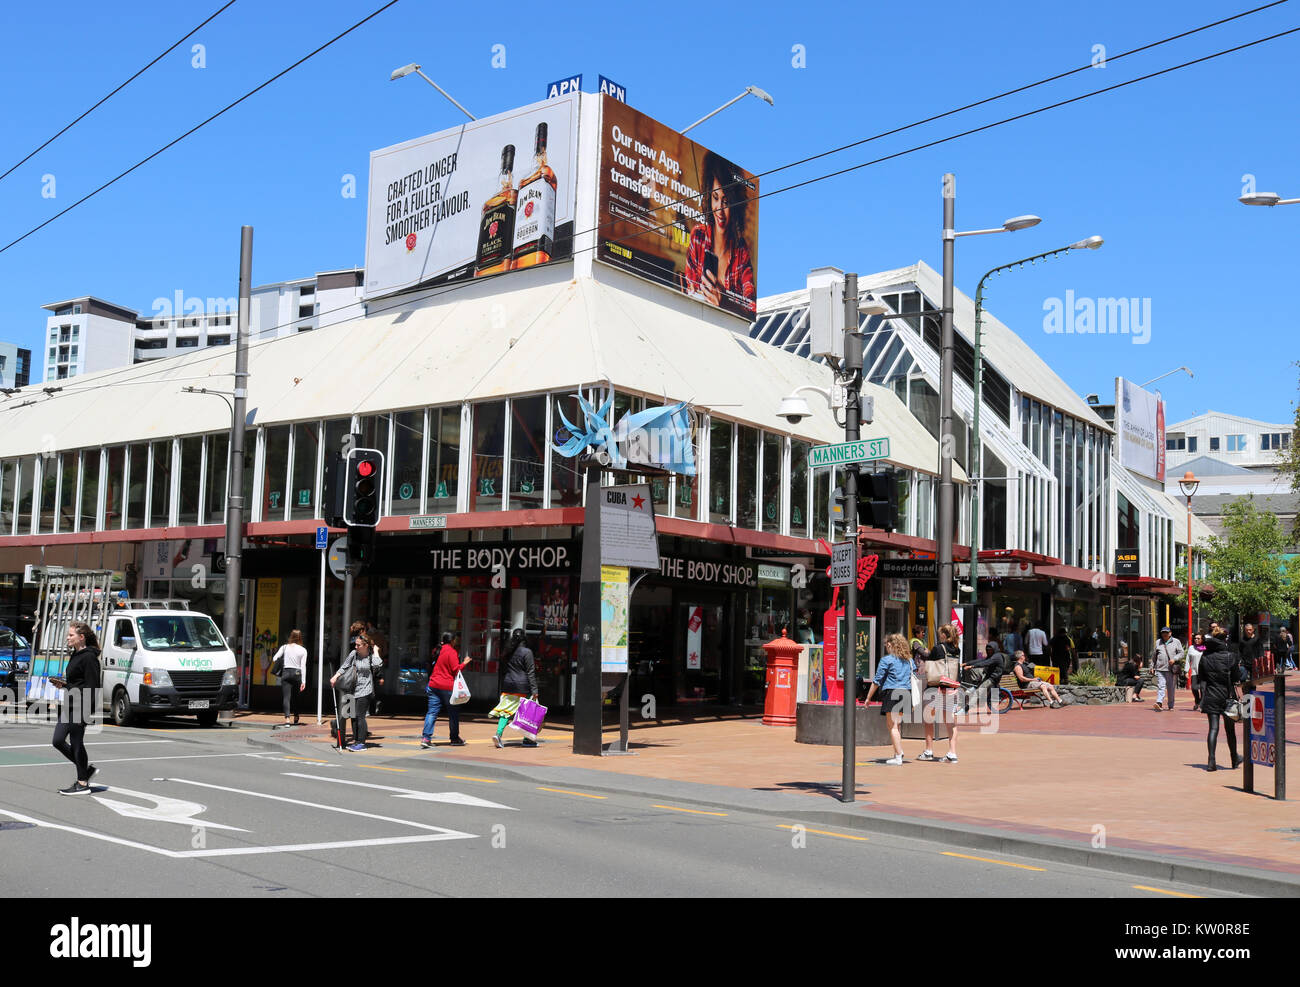 View across Manners Street in the center of Wellington, New Zealand and looking up pedestrianized part Cuba Street - Stock Image